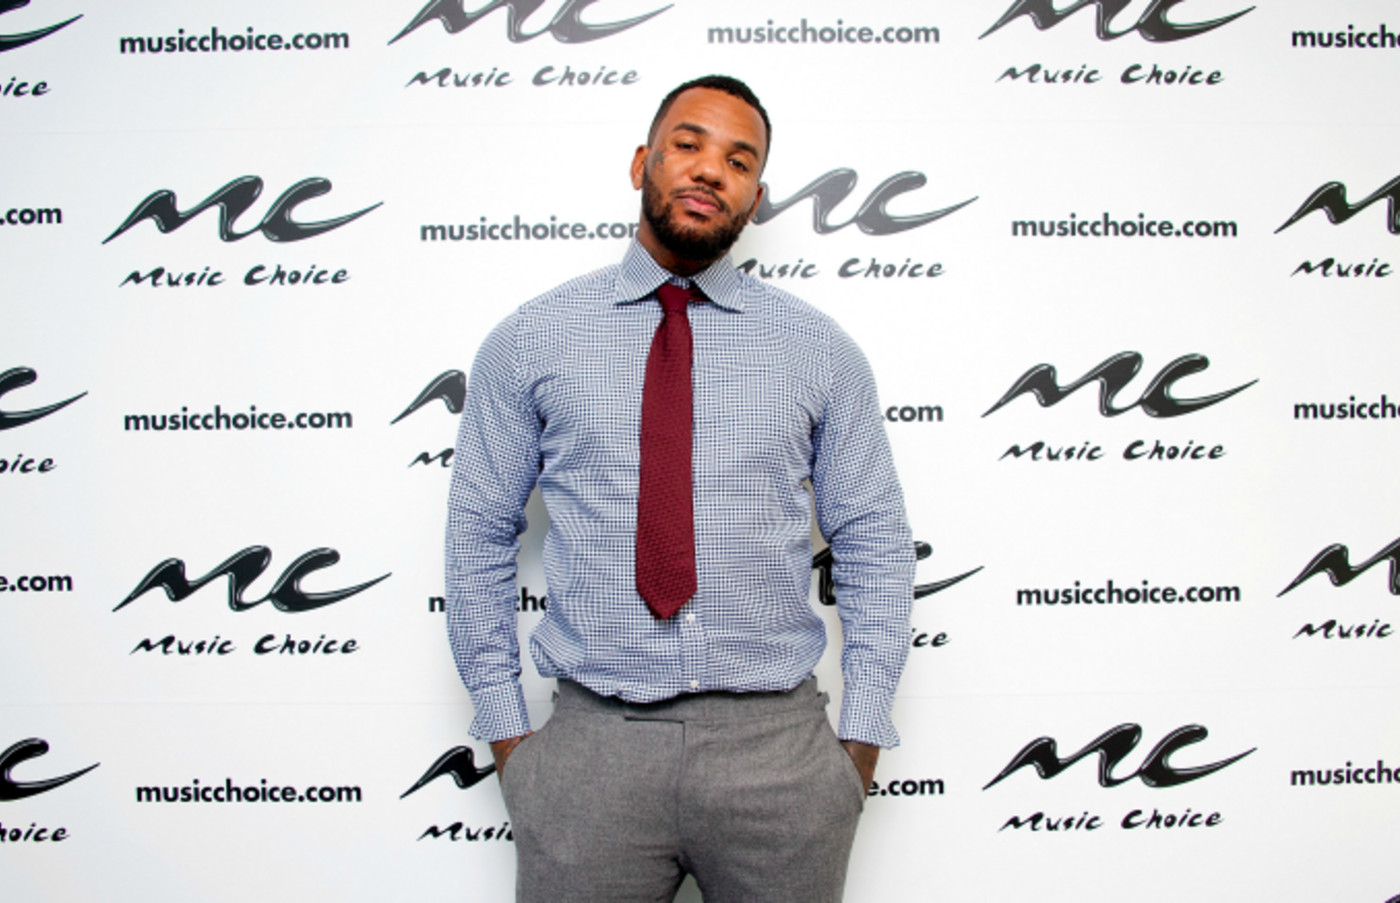 Rapper The Game visits Music Choice